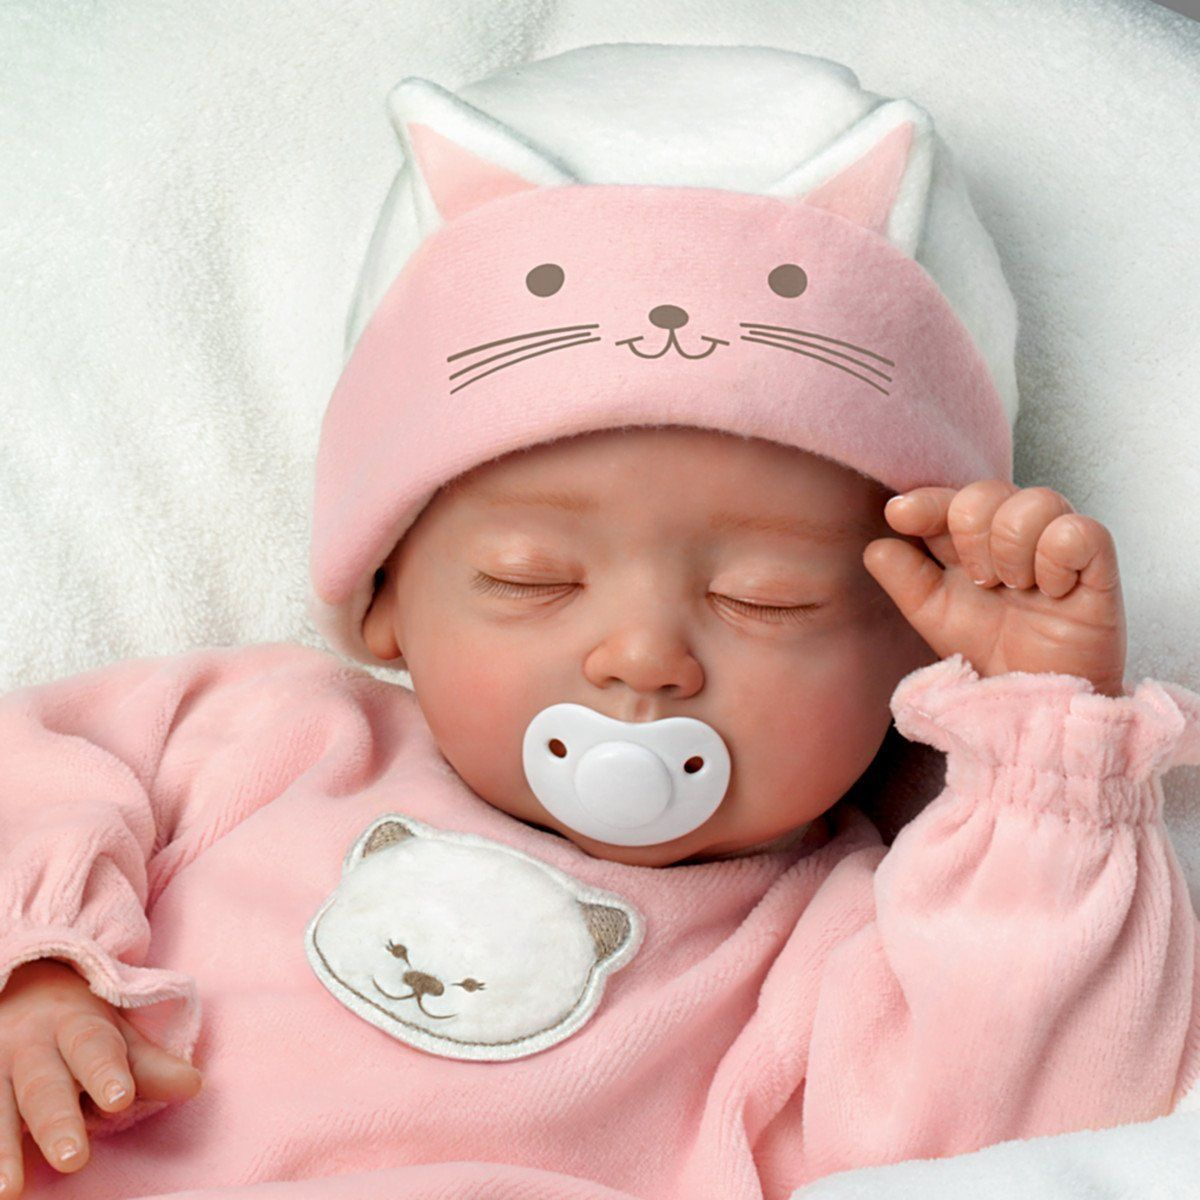 Amazon Com Katie My Sweet Little Kitten So Truly Real Lifelike Baby Girl Doll By The Ashton Drake Galleries Toys Baby Dolls Baby Girl Dolls Real Baby Dolls